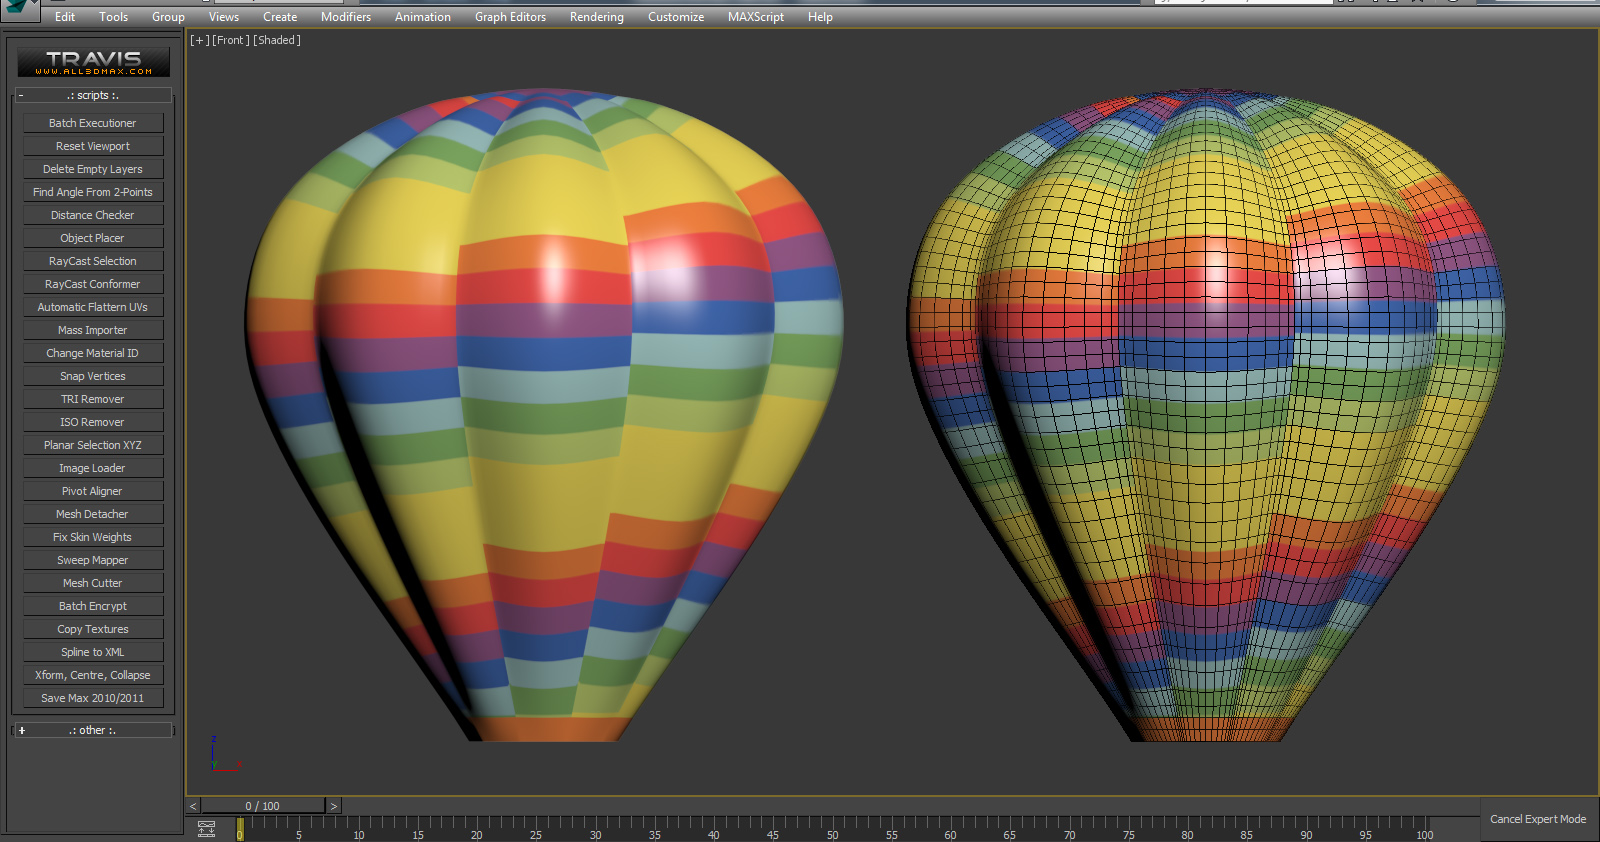 Help with hot air balloon autodesk community 3ds max using blueprints draw your spline 02 center the pivot and add lathe modifier with segments matching blueprint 03 delete all additional faces leaving a malvernweather Image collections